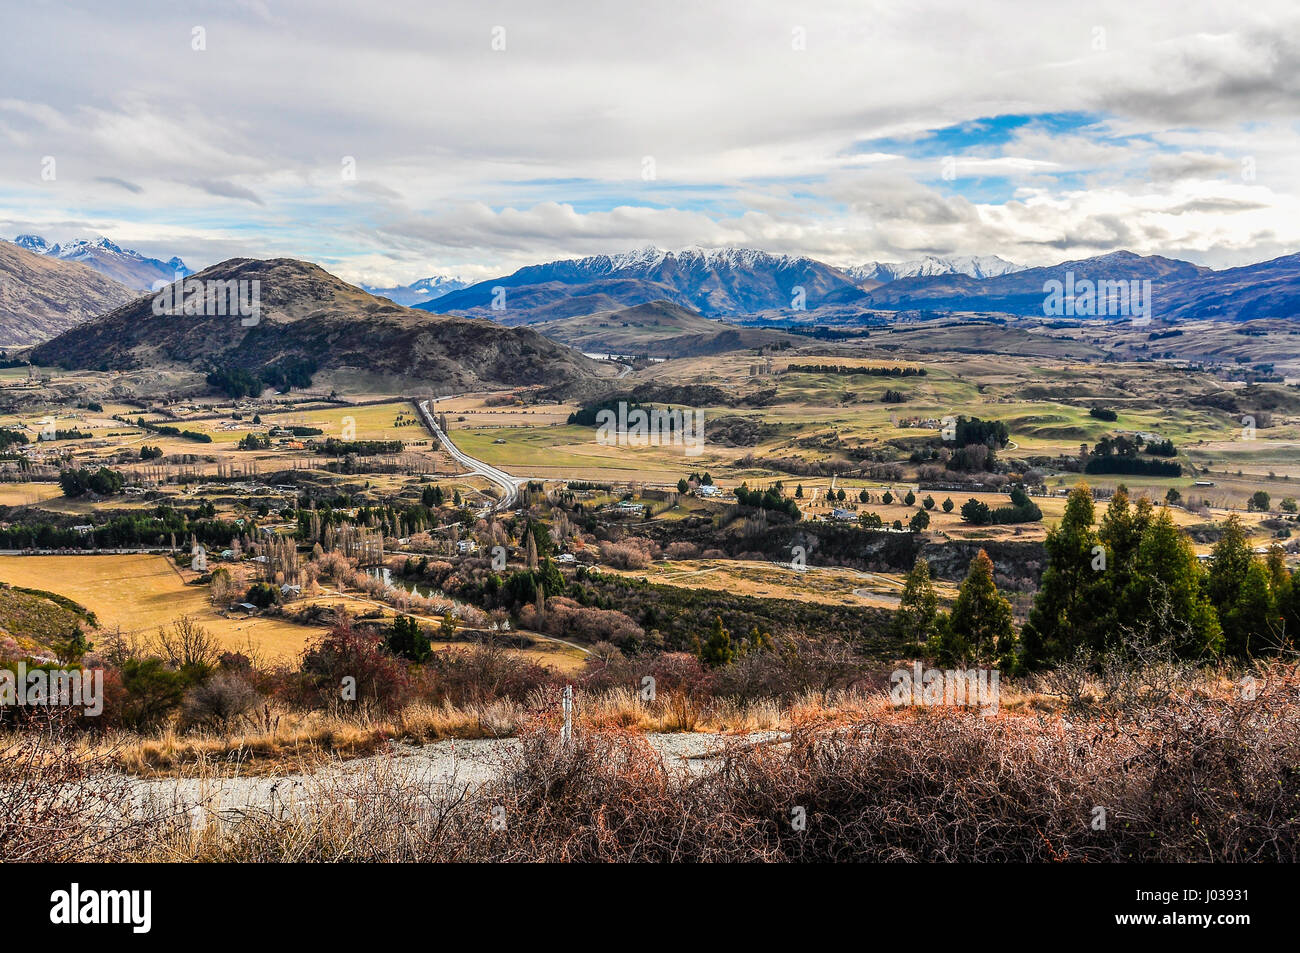 Views in the Crown Range Road near Queenstown in the Southern Lakes Region of New Zealand - Stock Image